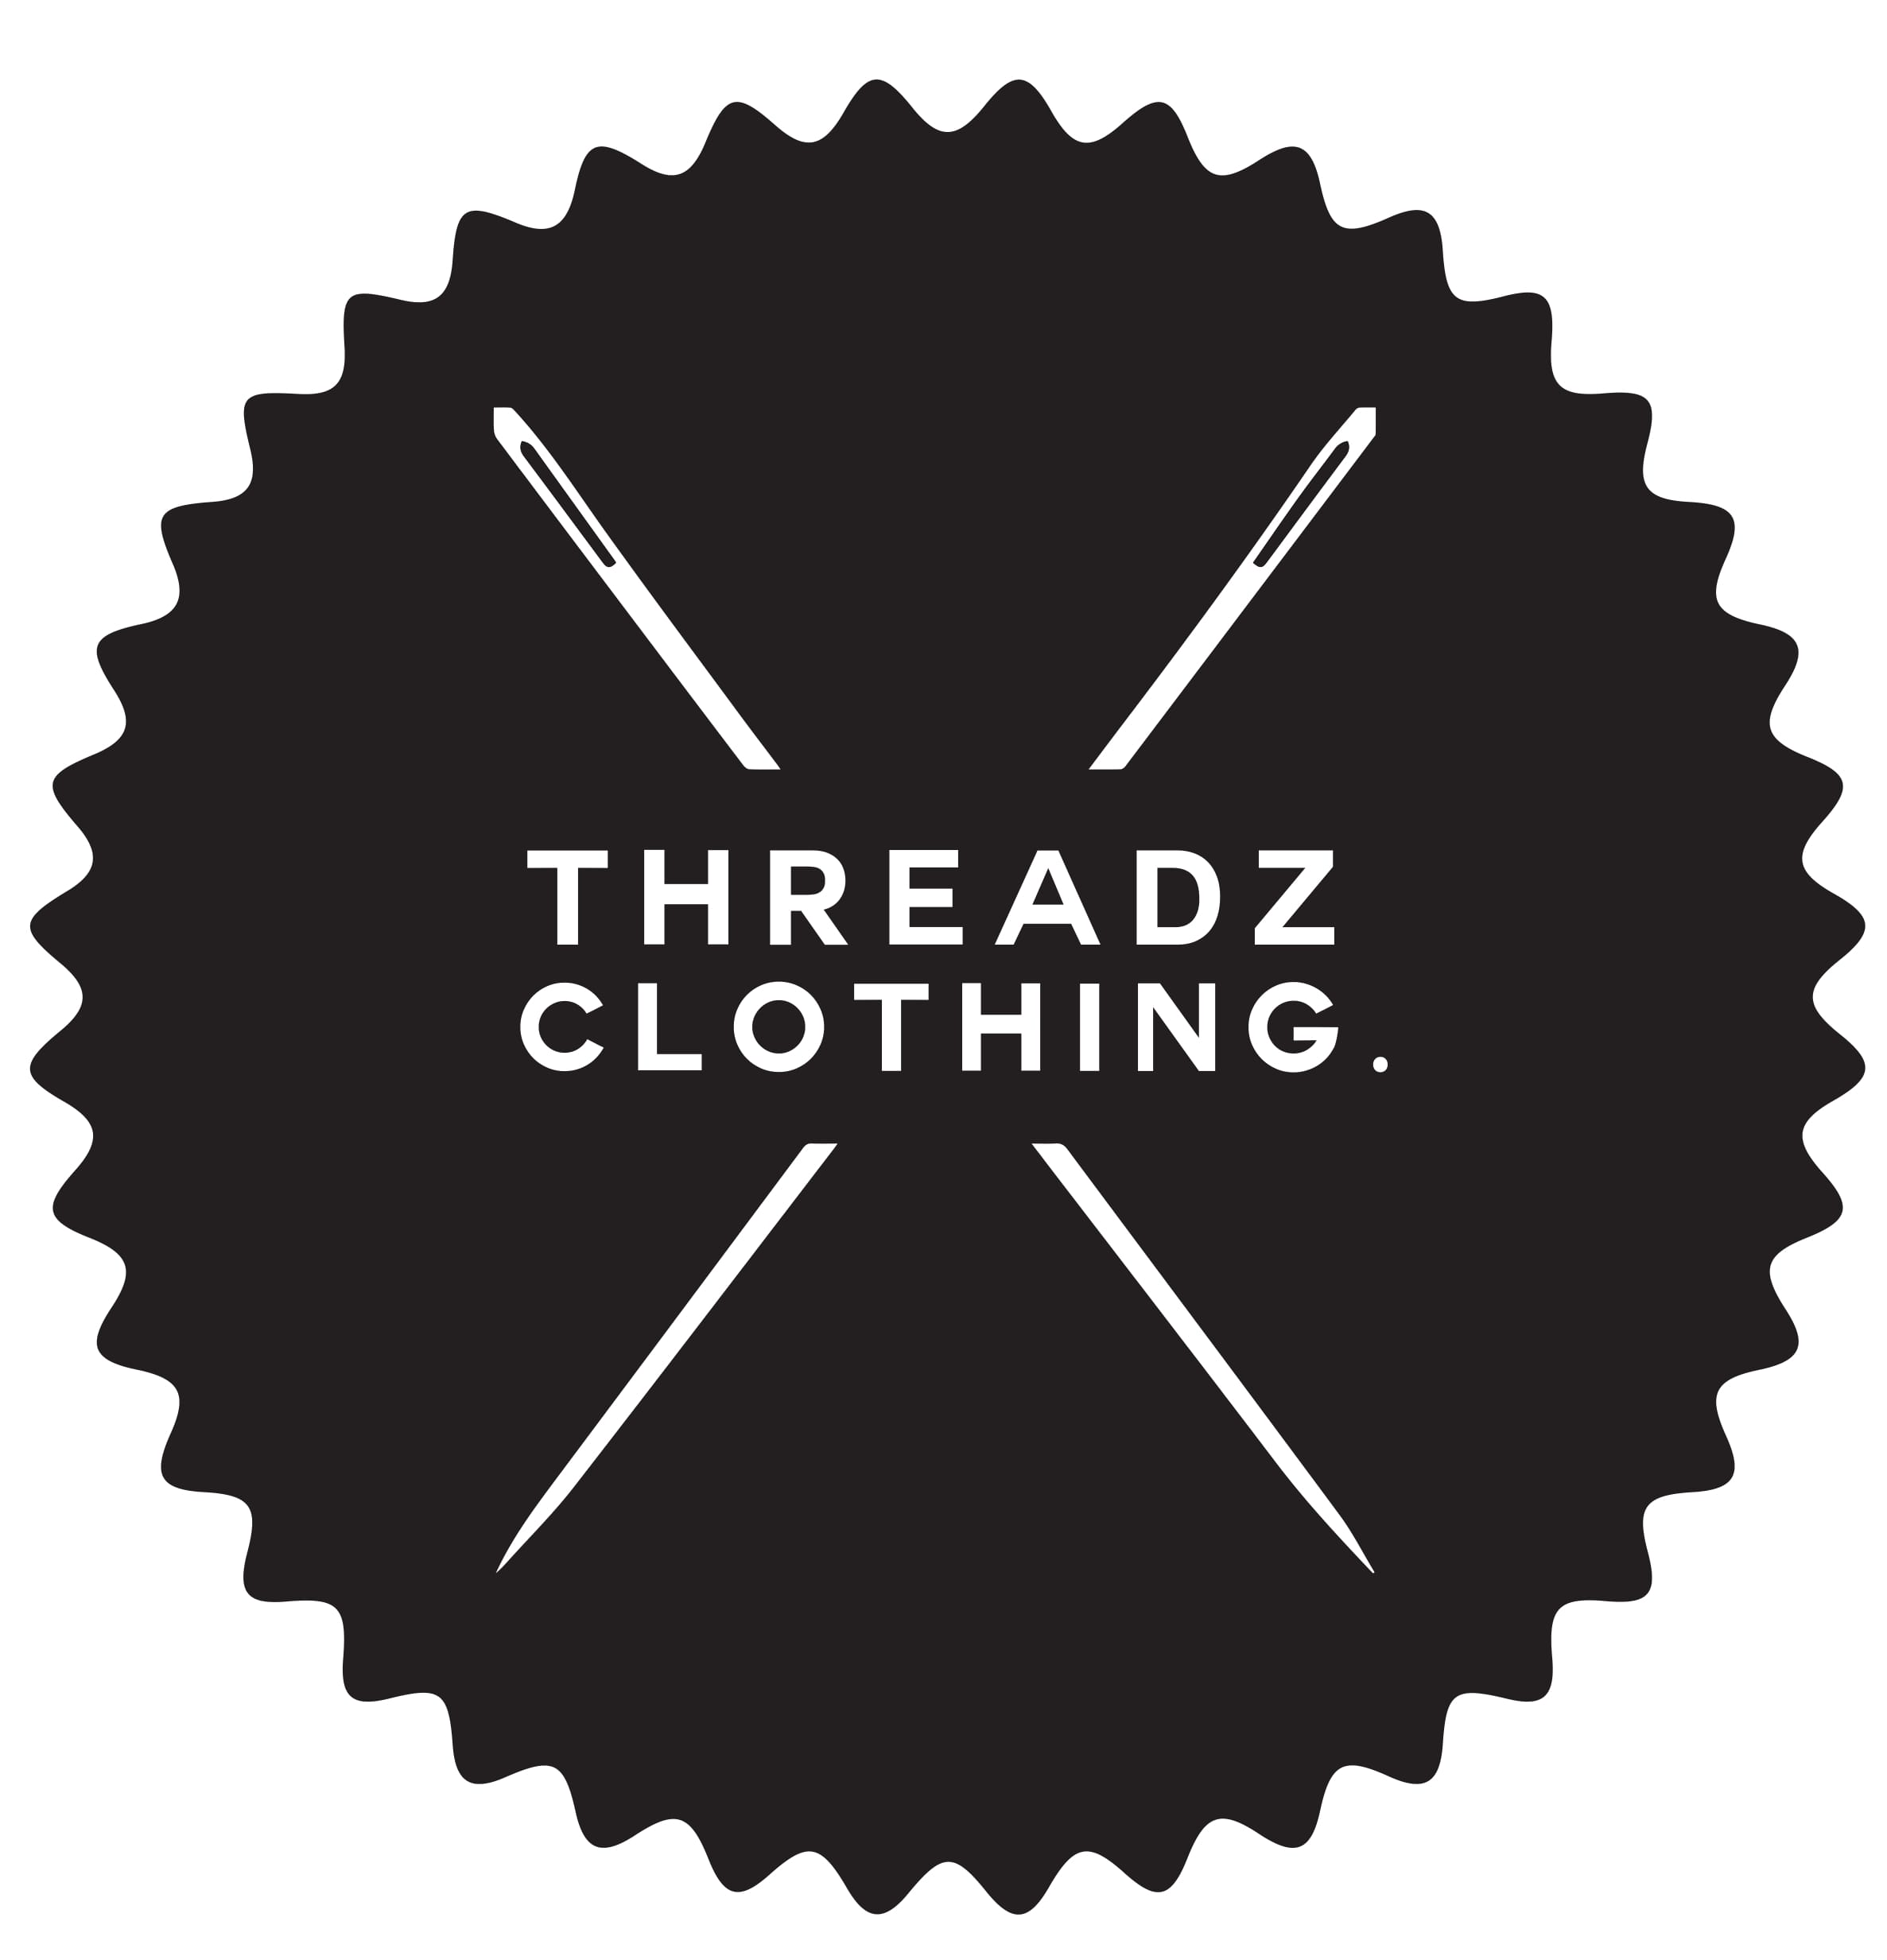 threadz new logo-1.jpg